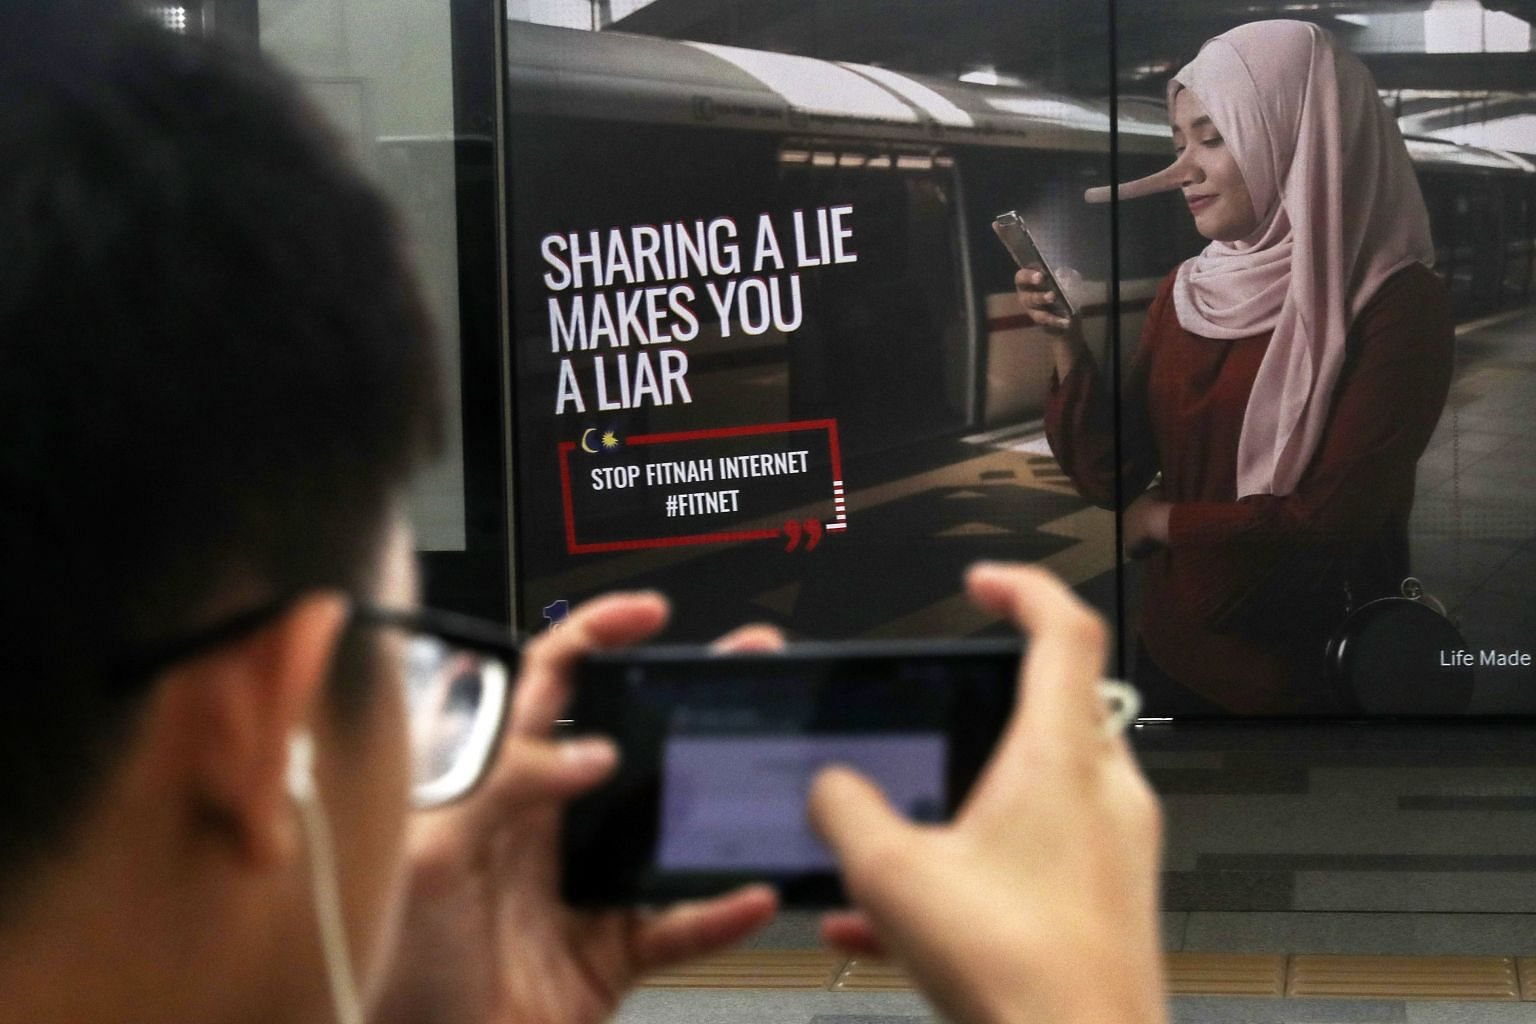 An advertisement warning members of the public not to spread fake news is seen in Kuala Lumpur on March 31, 2018. Malaysian lawmakers approved an anti-fake news law on April 2, 2018. Image: EPA-EFE